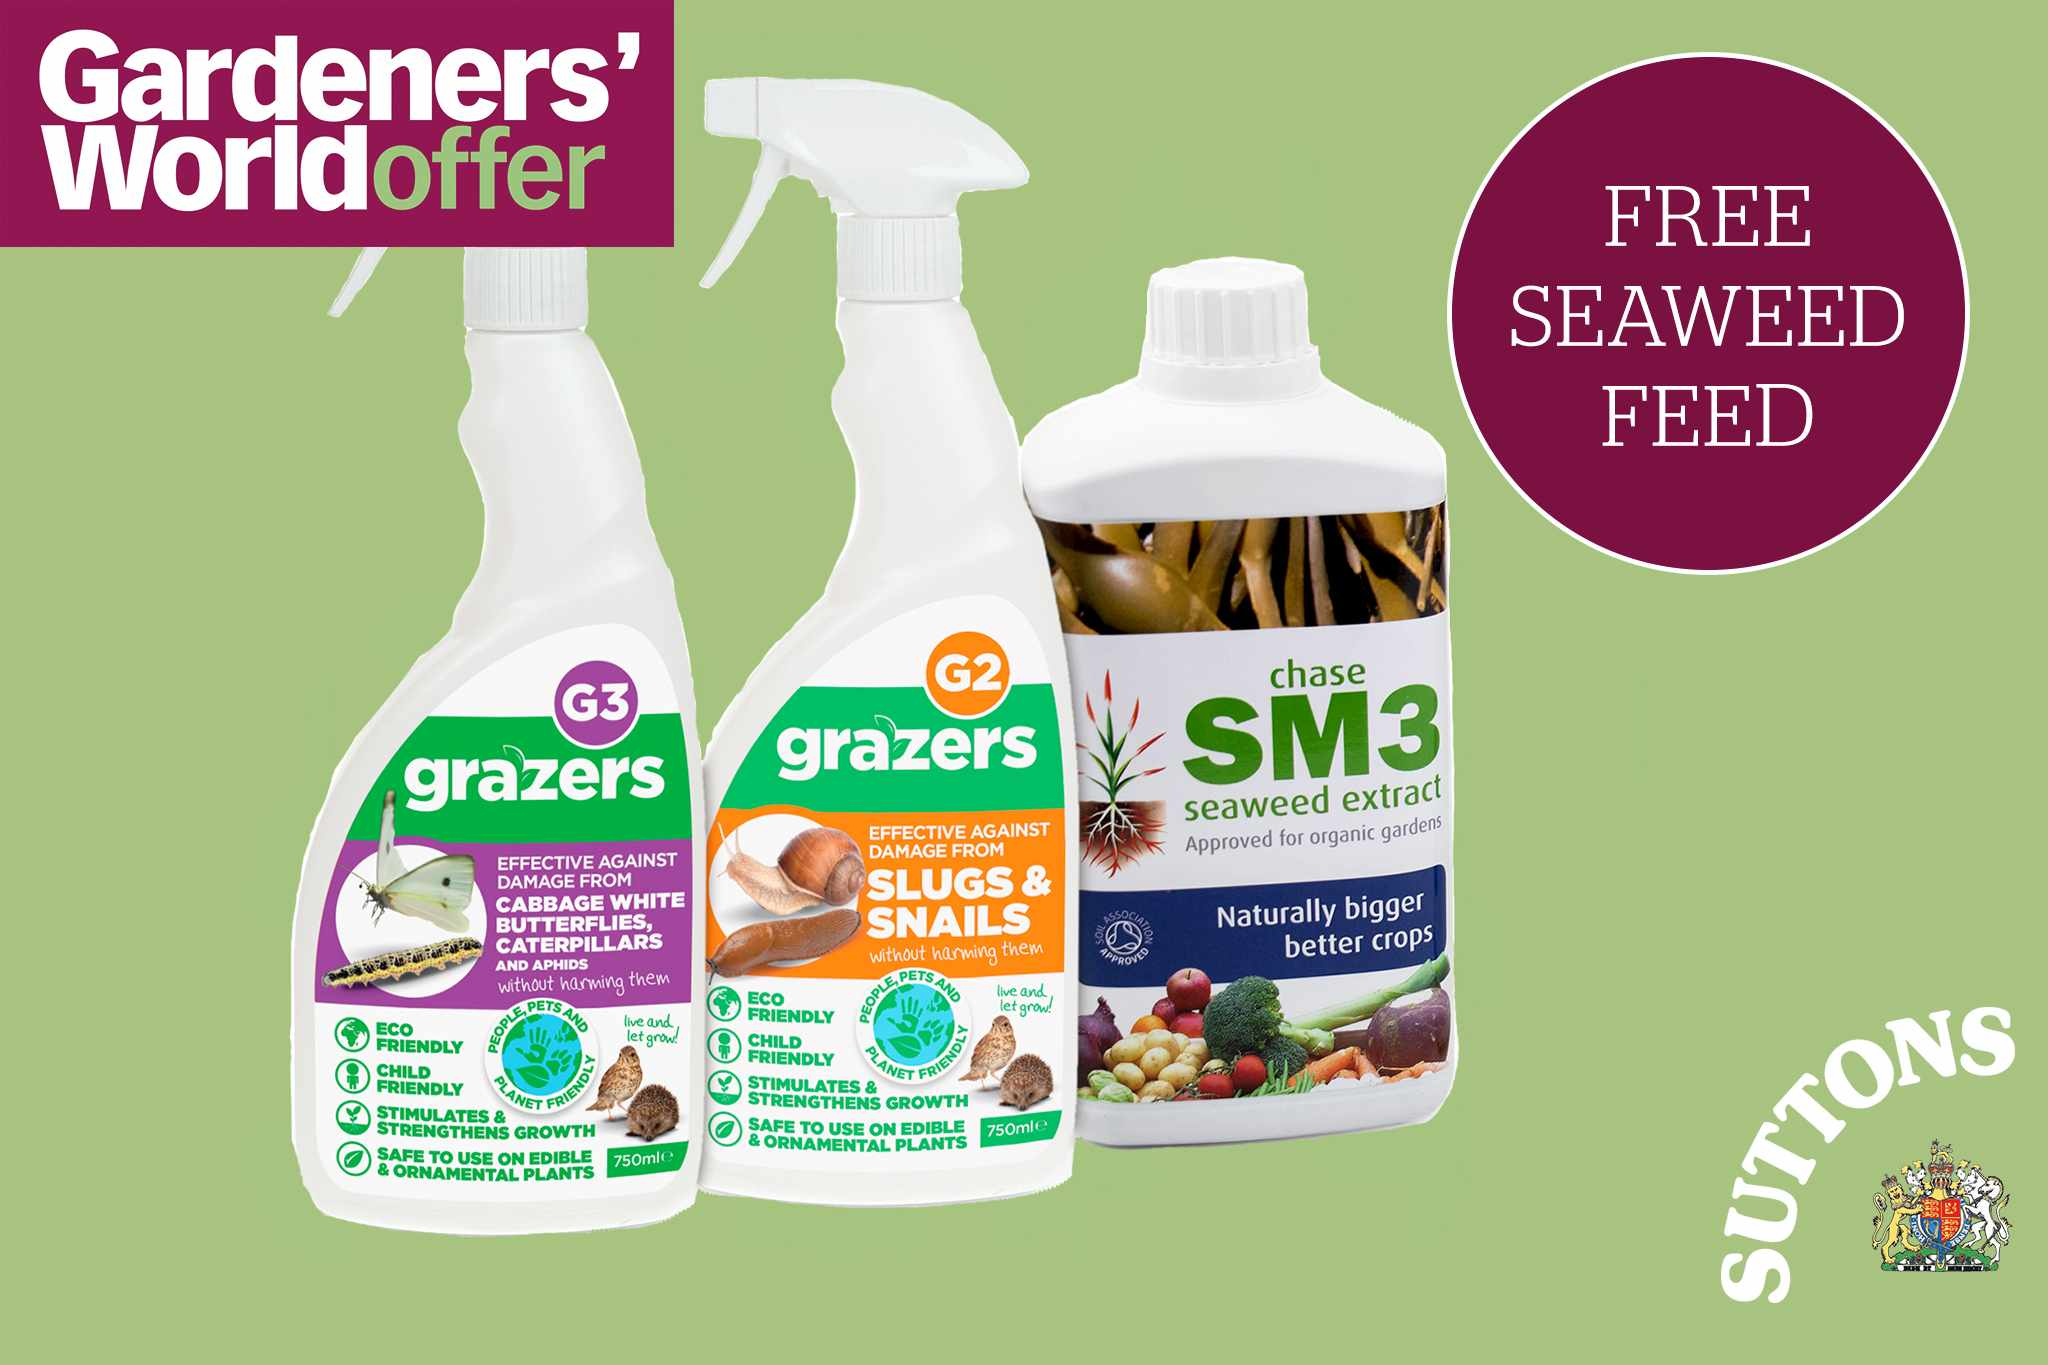 Suttons free* seaweed with pest control kit